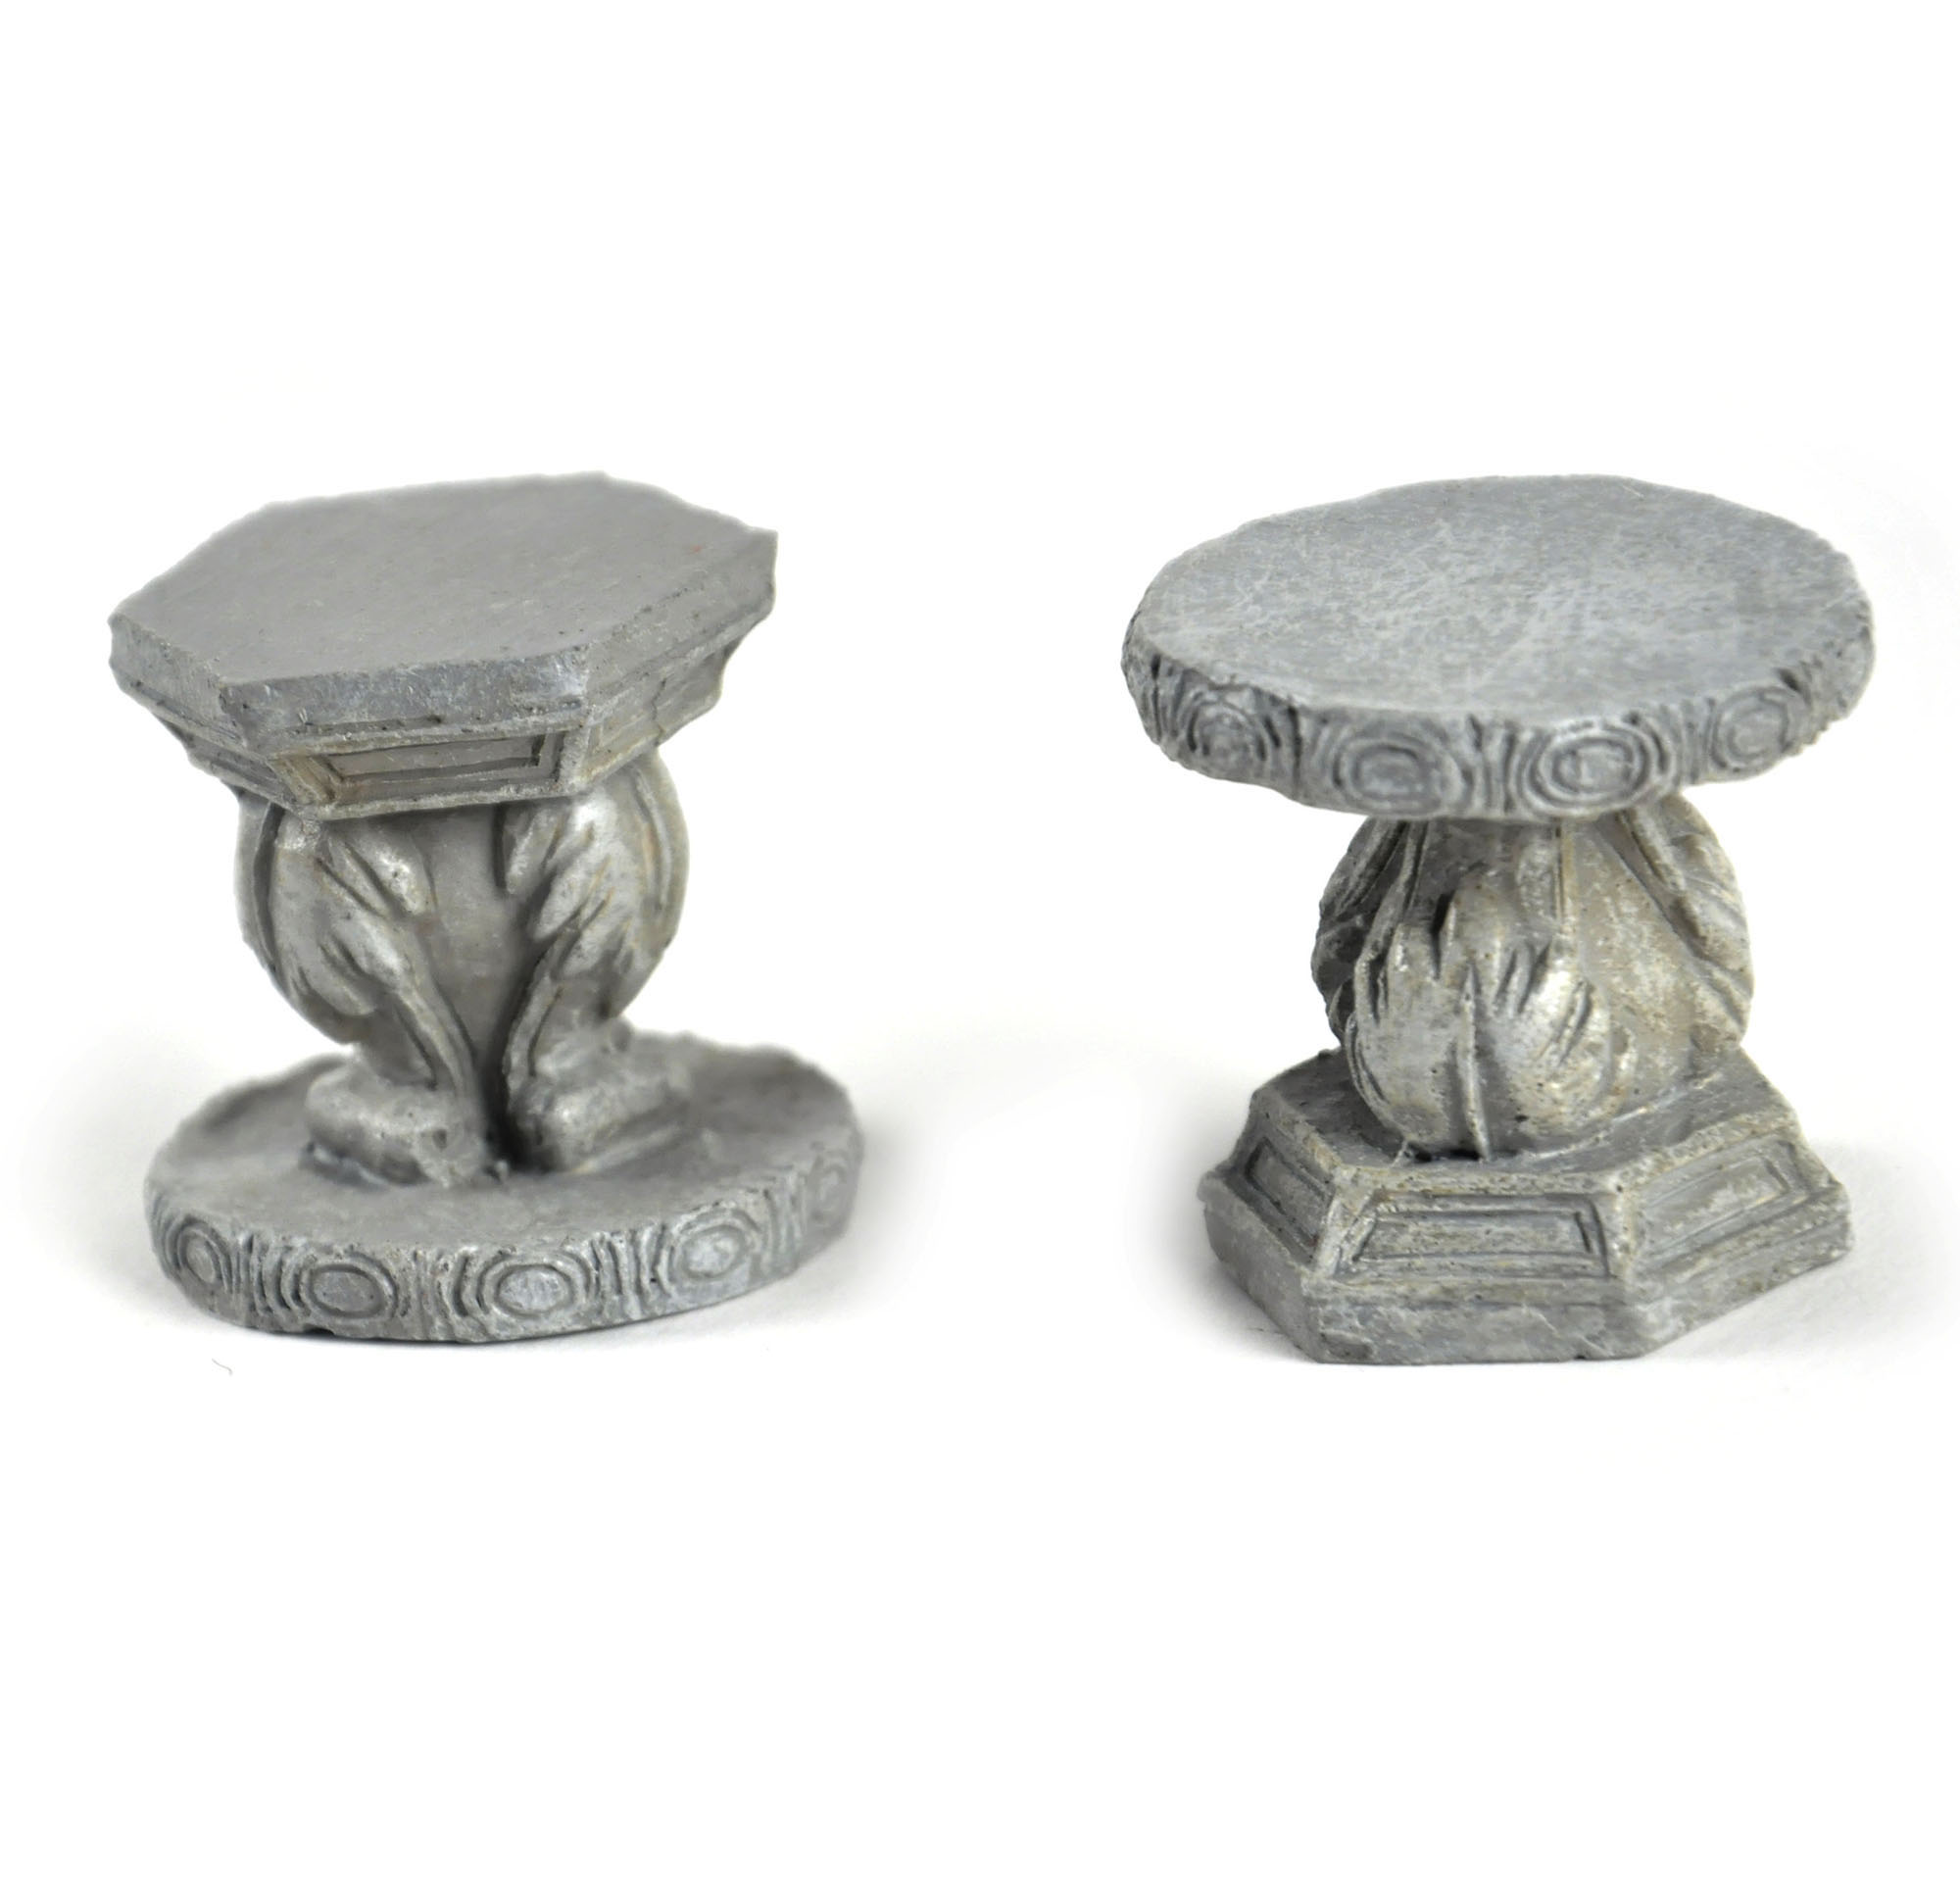 Fairy Stone Garden Stools   Fiddlehead Fairy Garden Collection